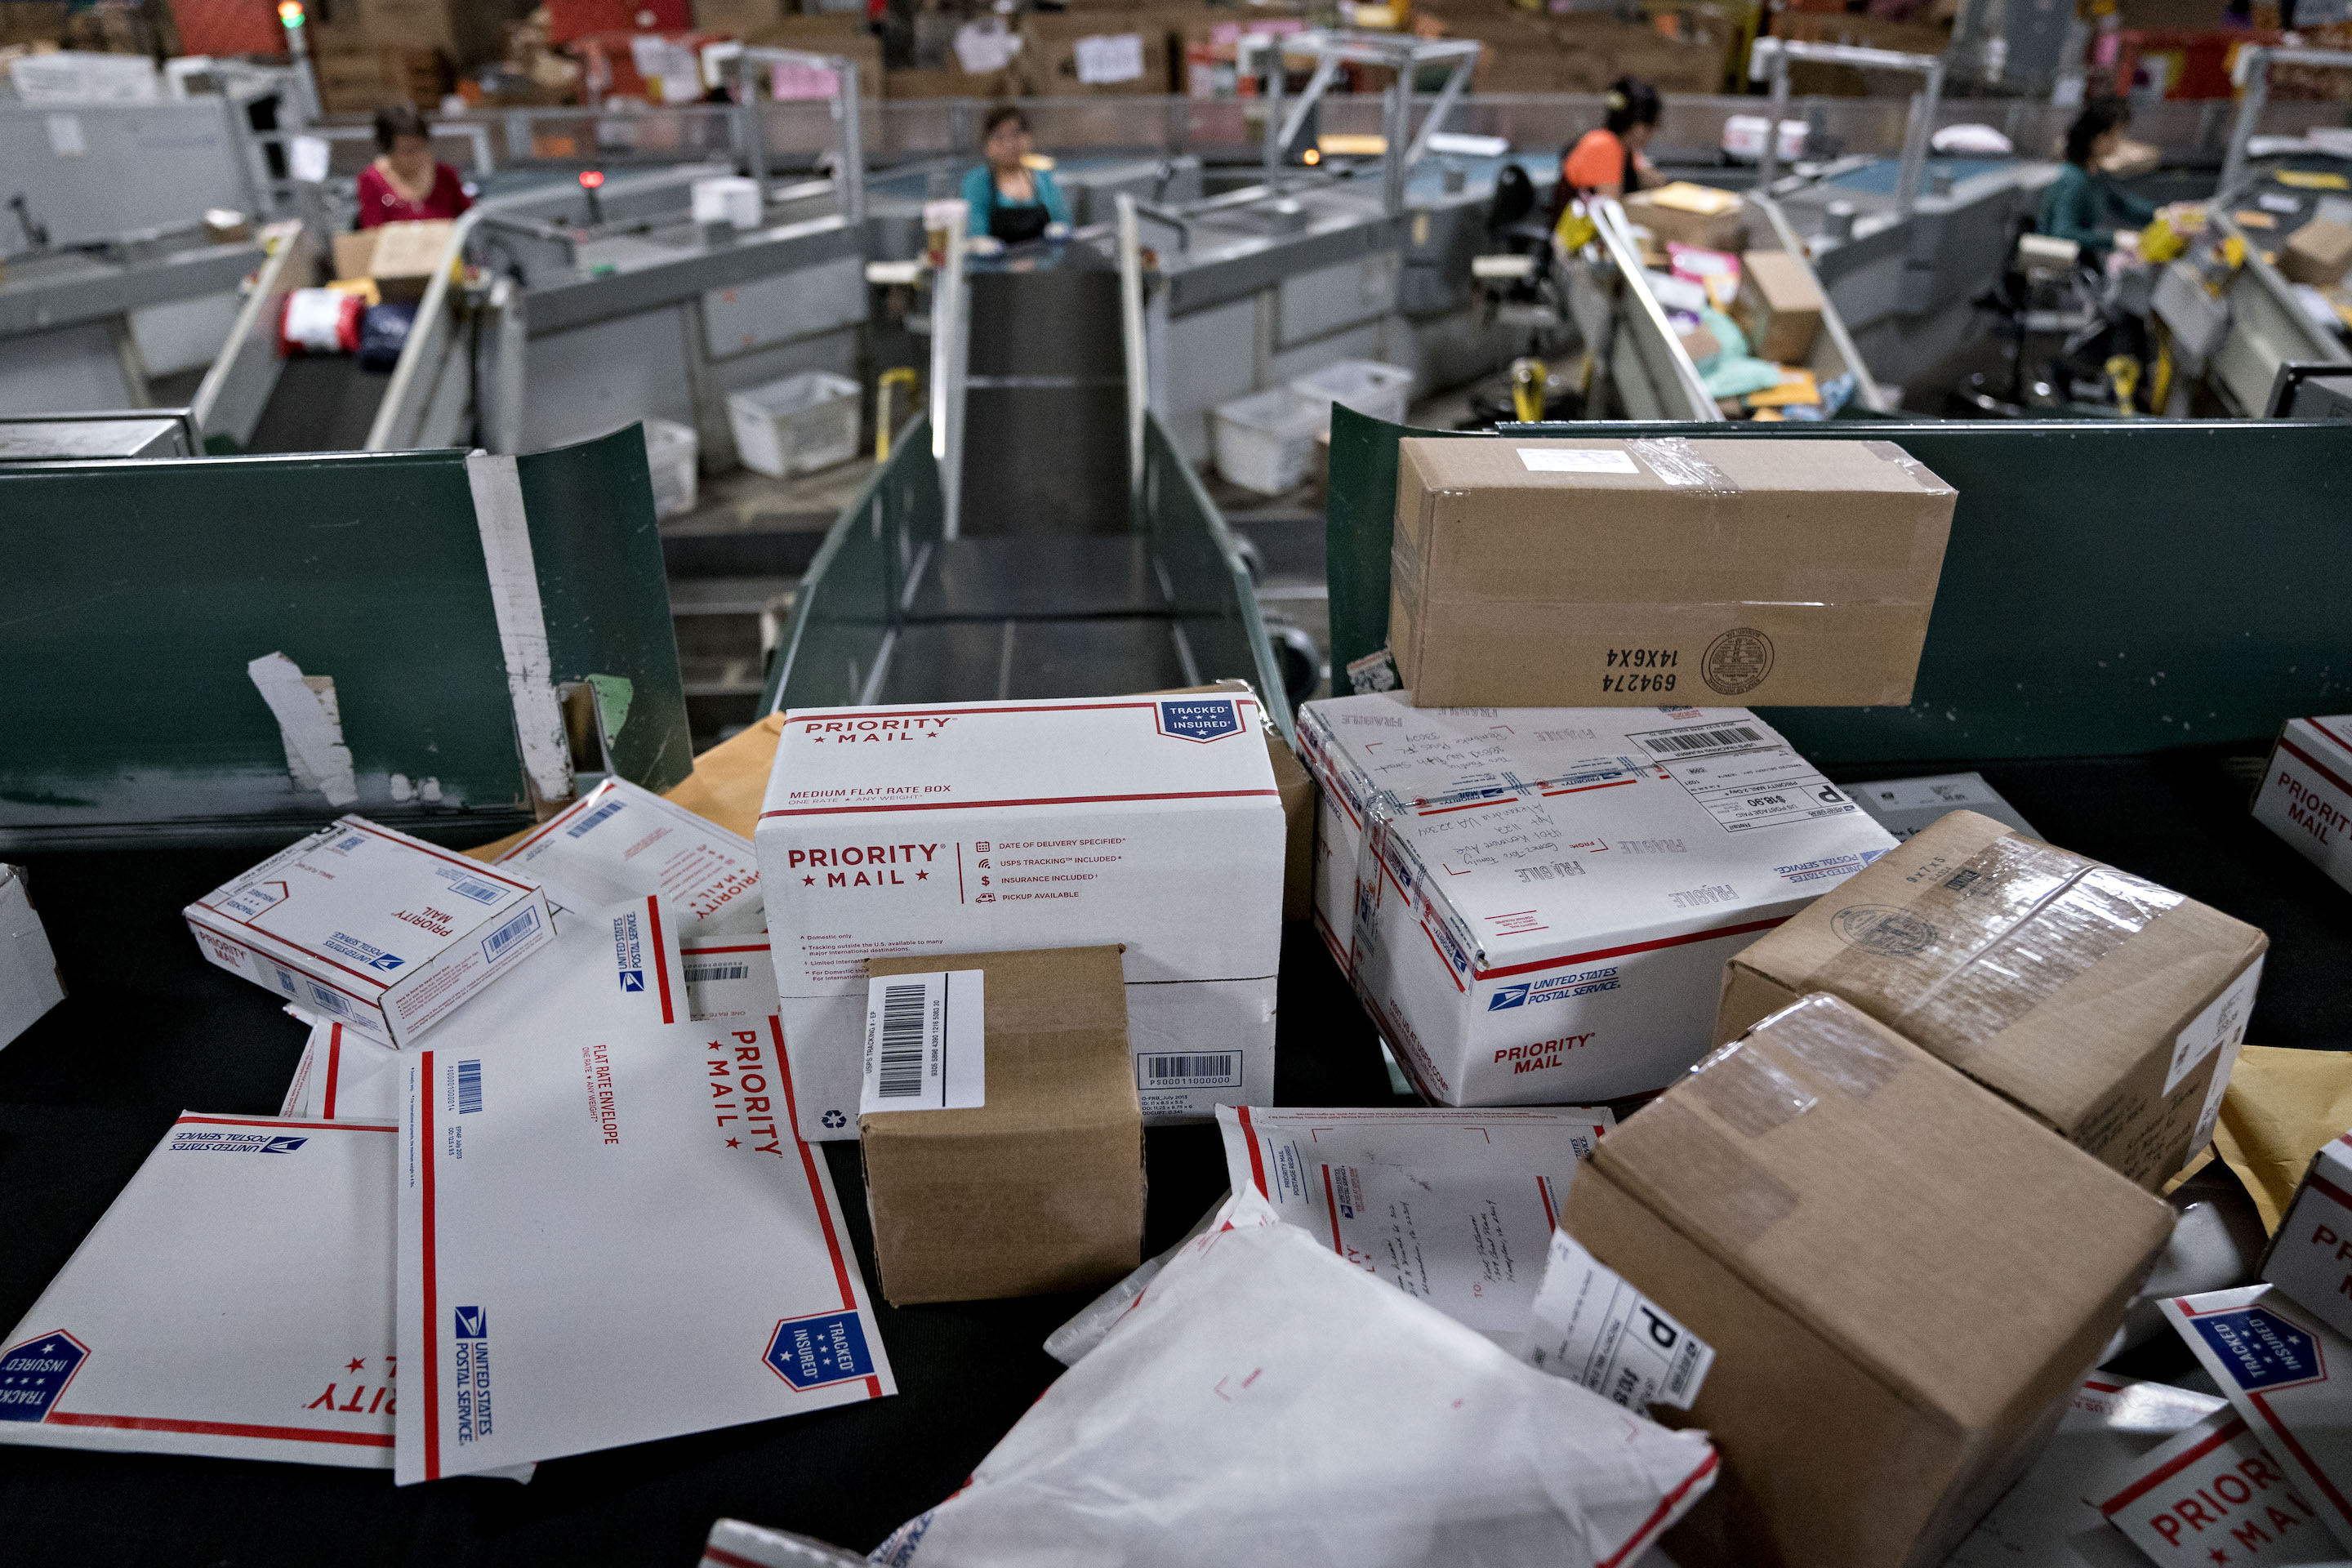 Operations At A U.S. Postal Service Processing And Distribution Center